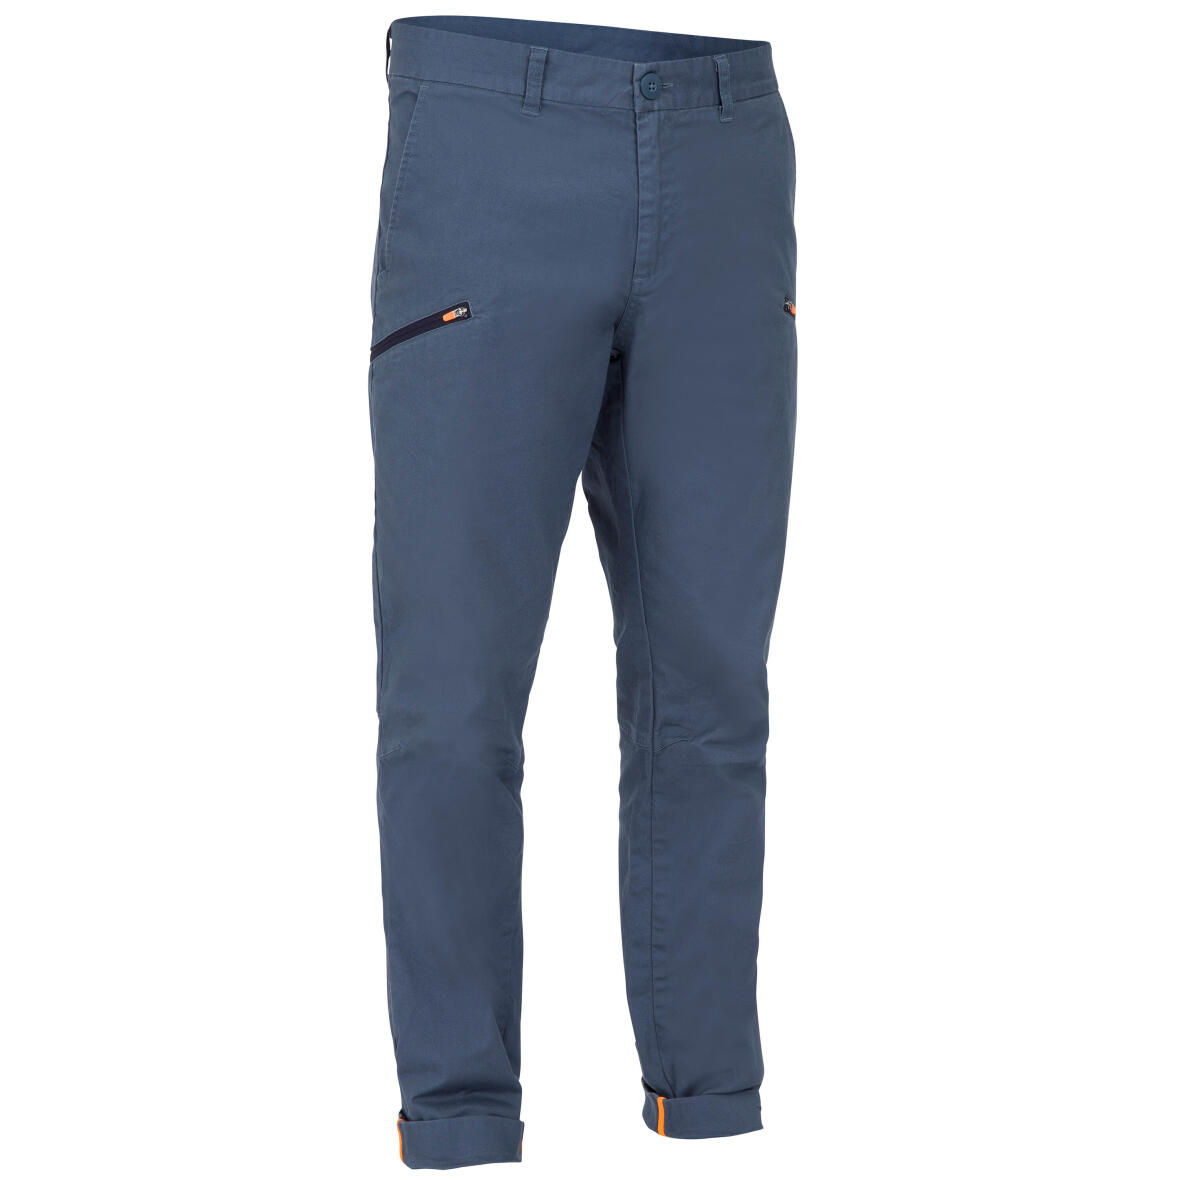 Keelboat-sailing-Trousers